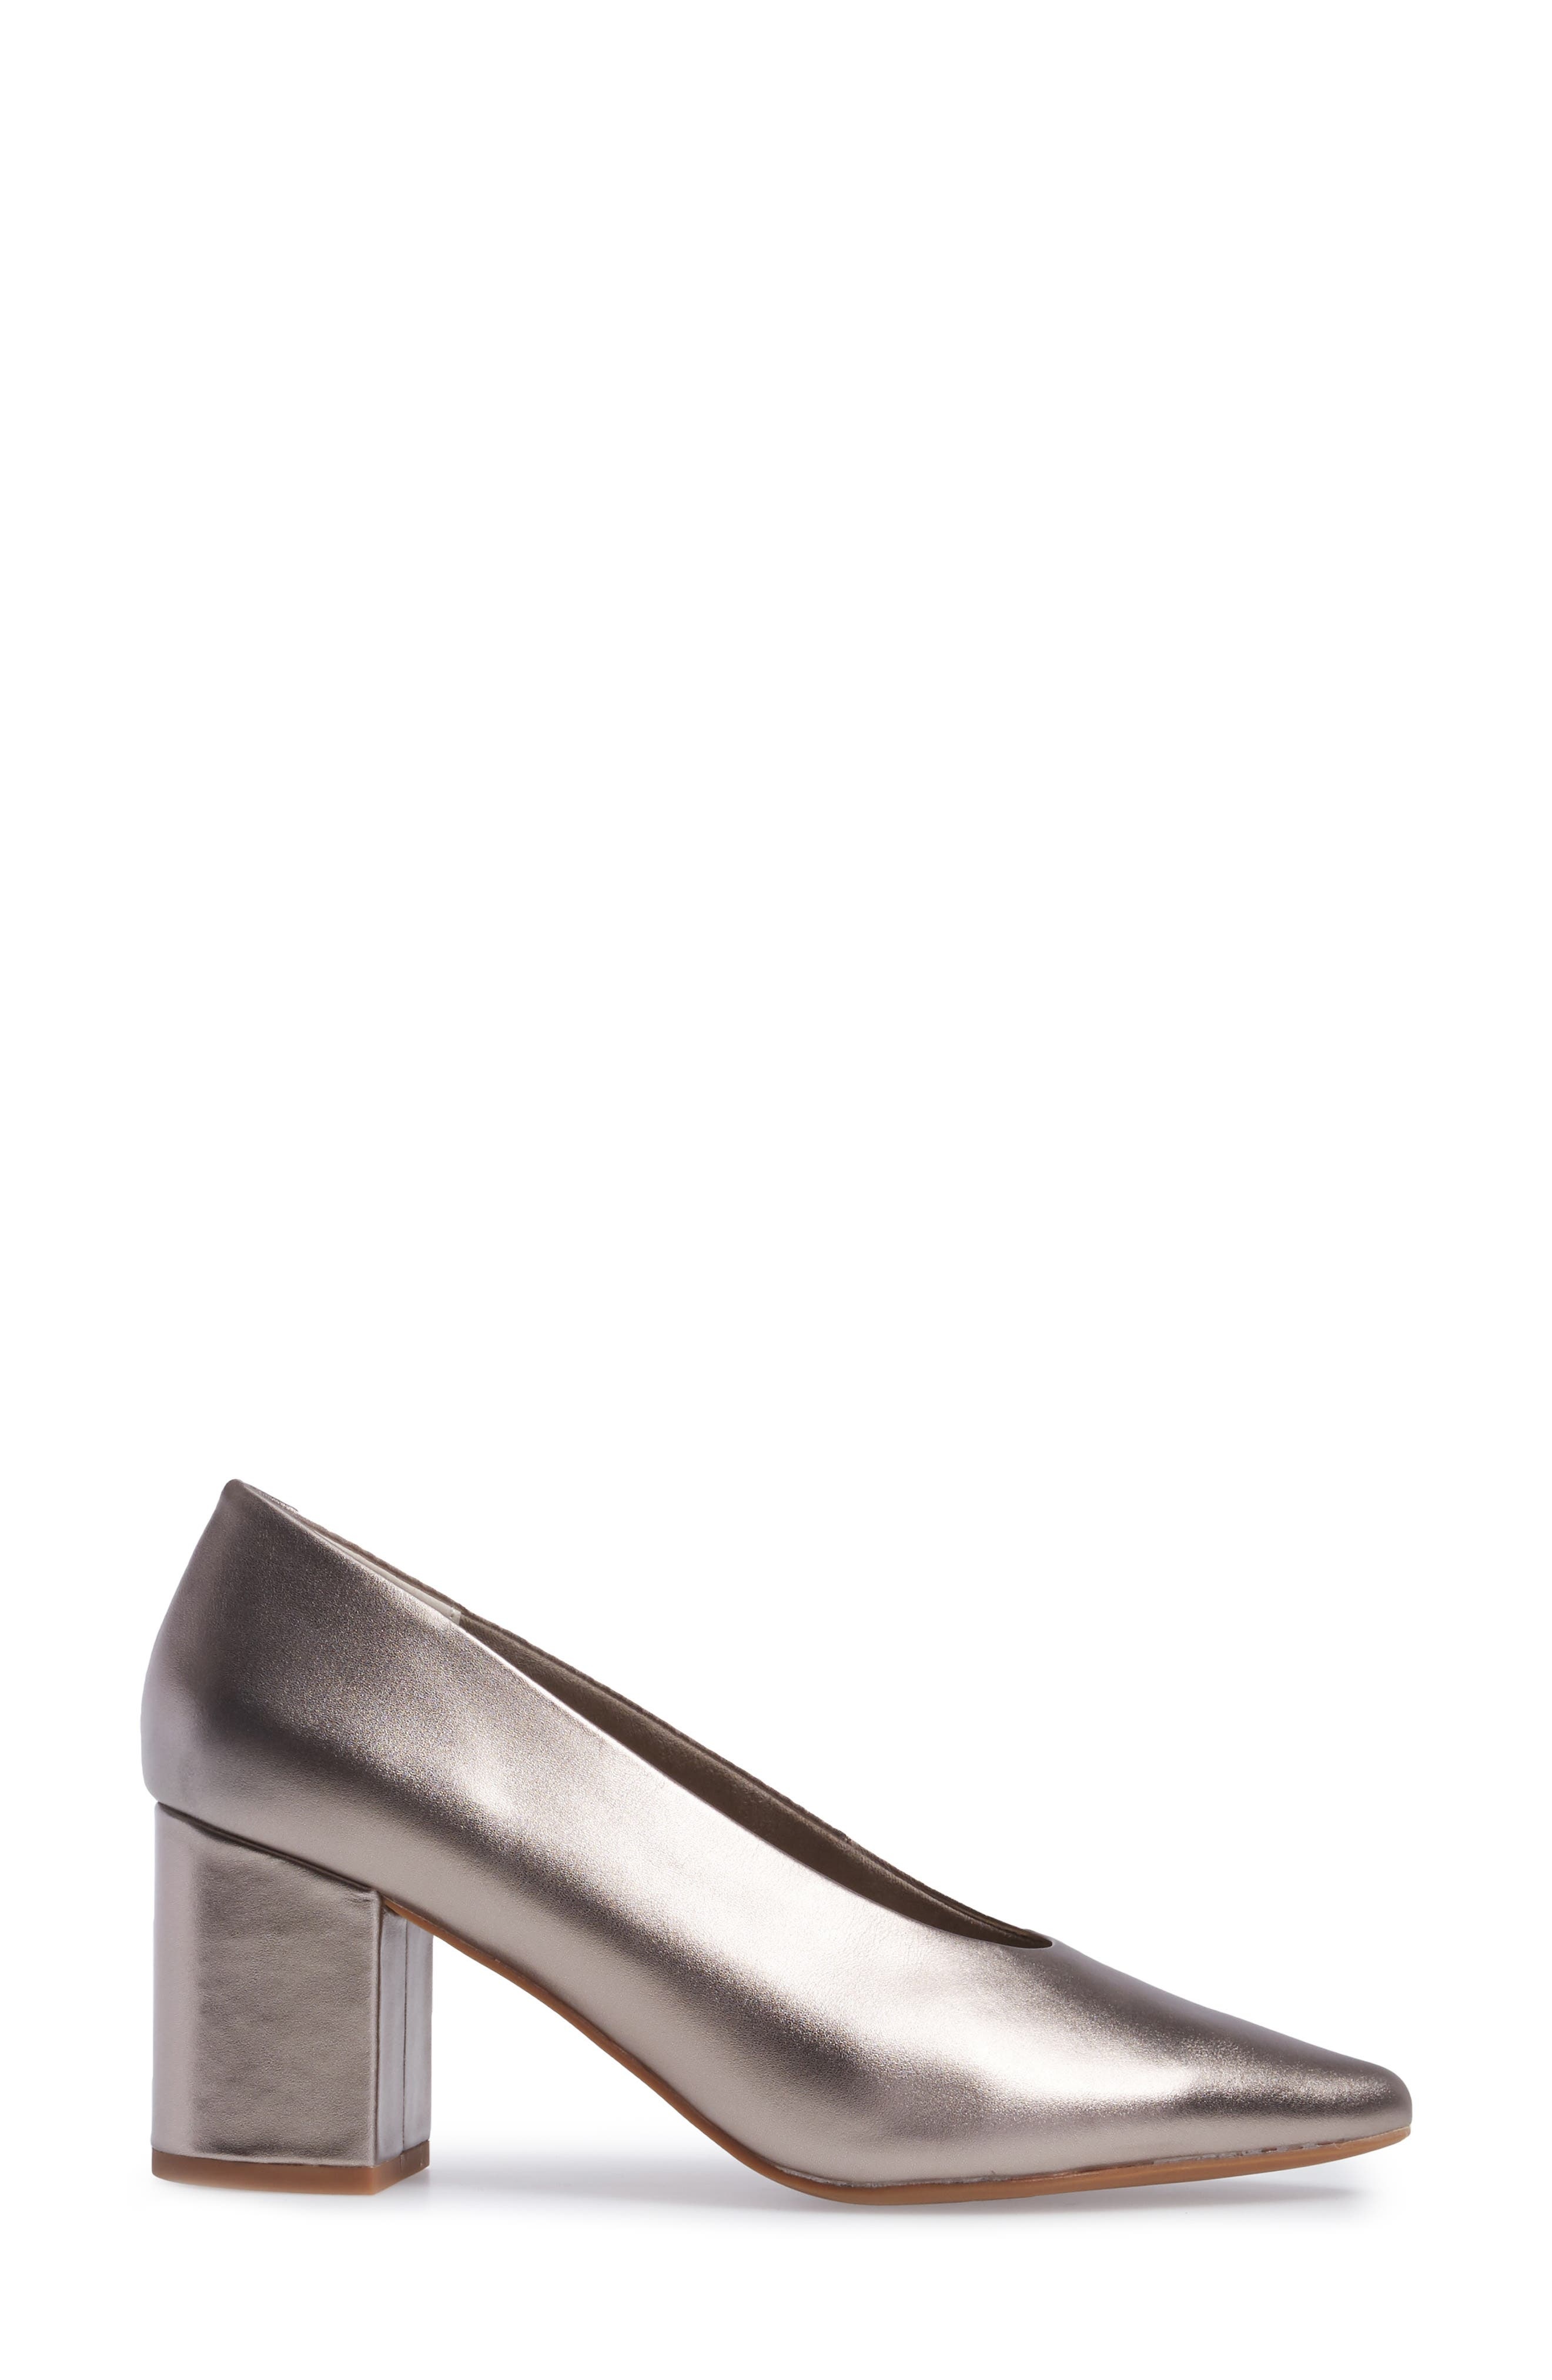 Rehearse Pointy Toe Pump,                             Alternate thumbnail 3, color,                             Pewter Leather